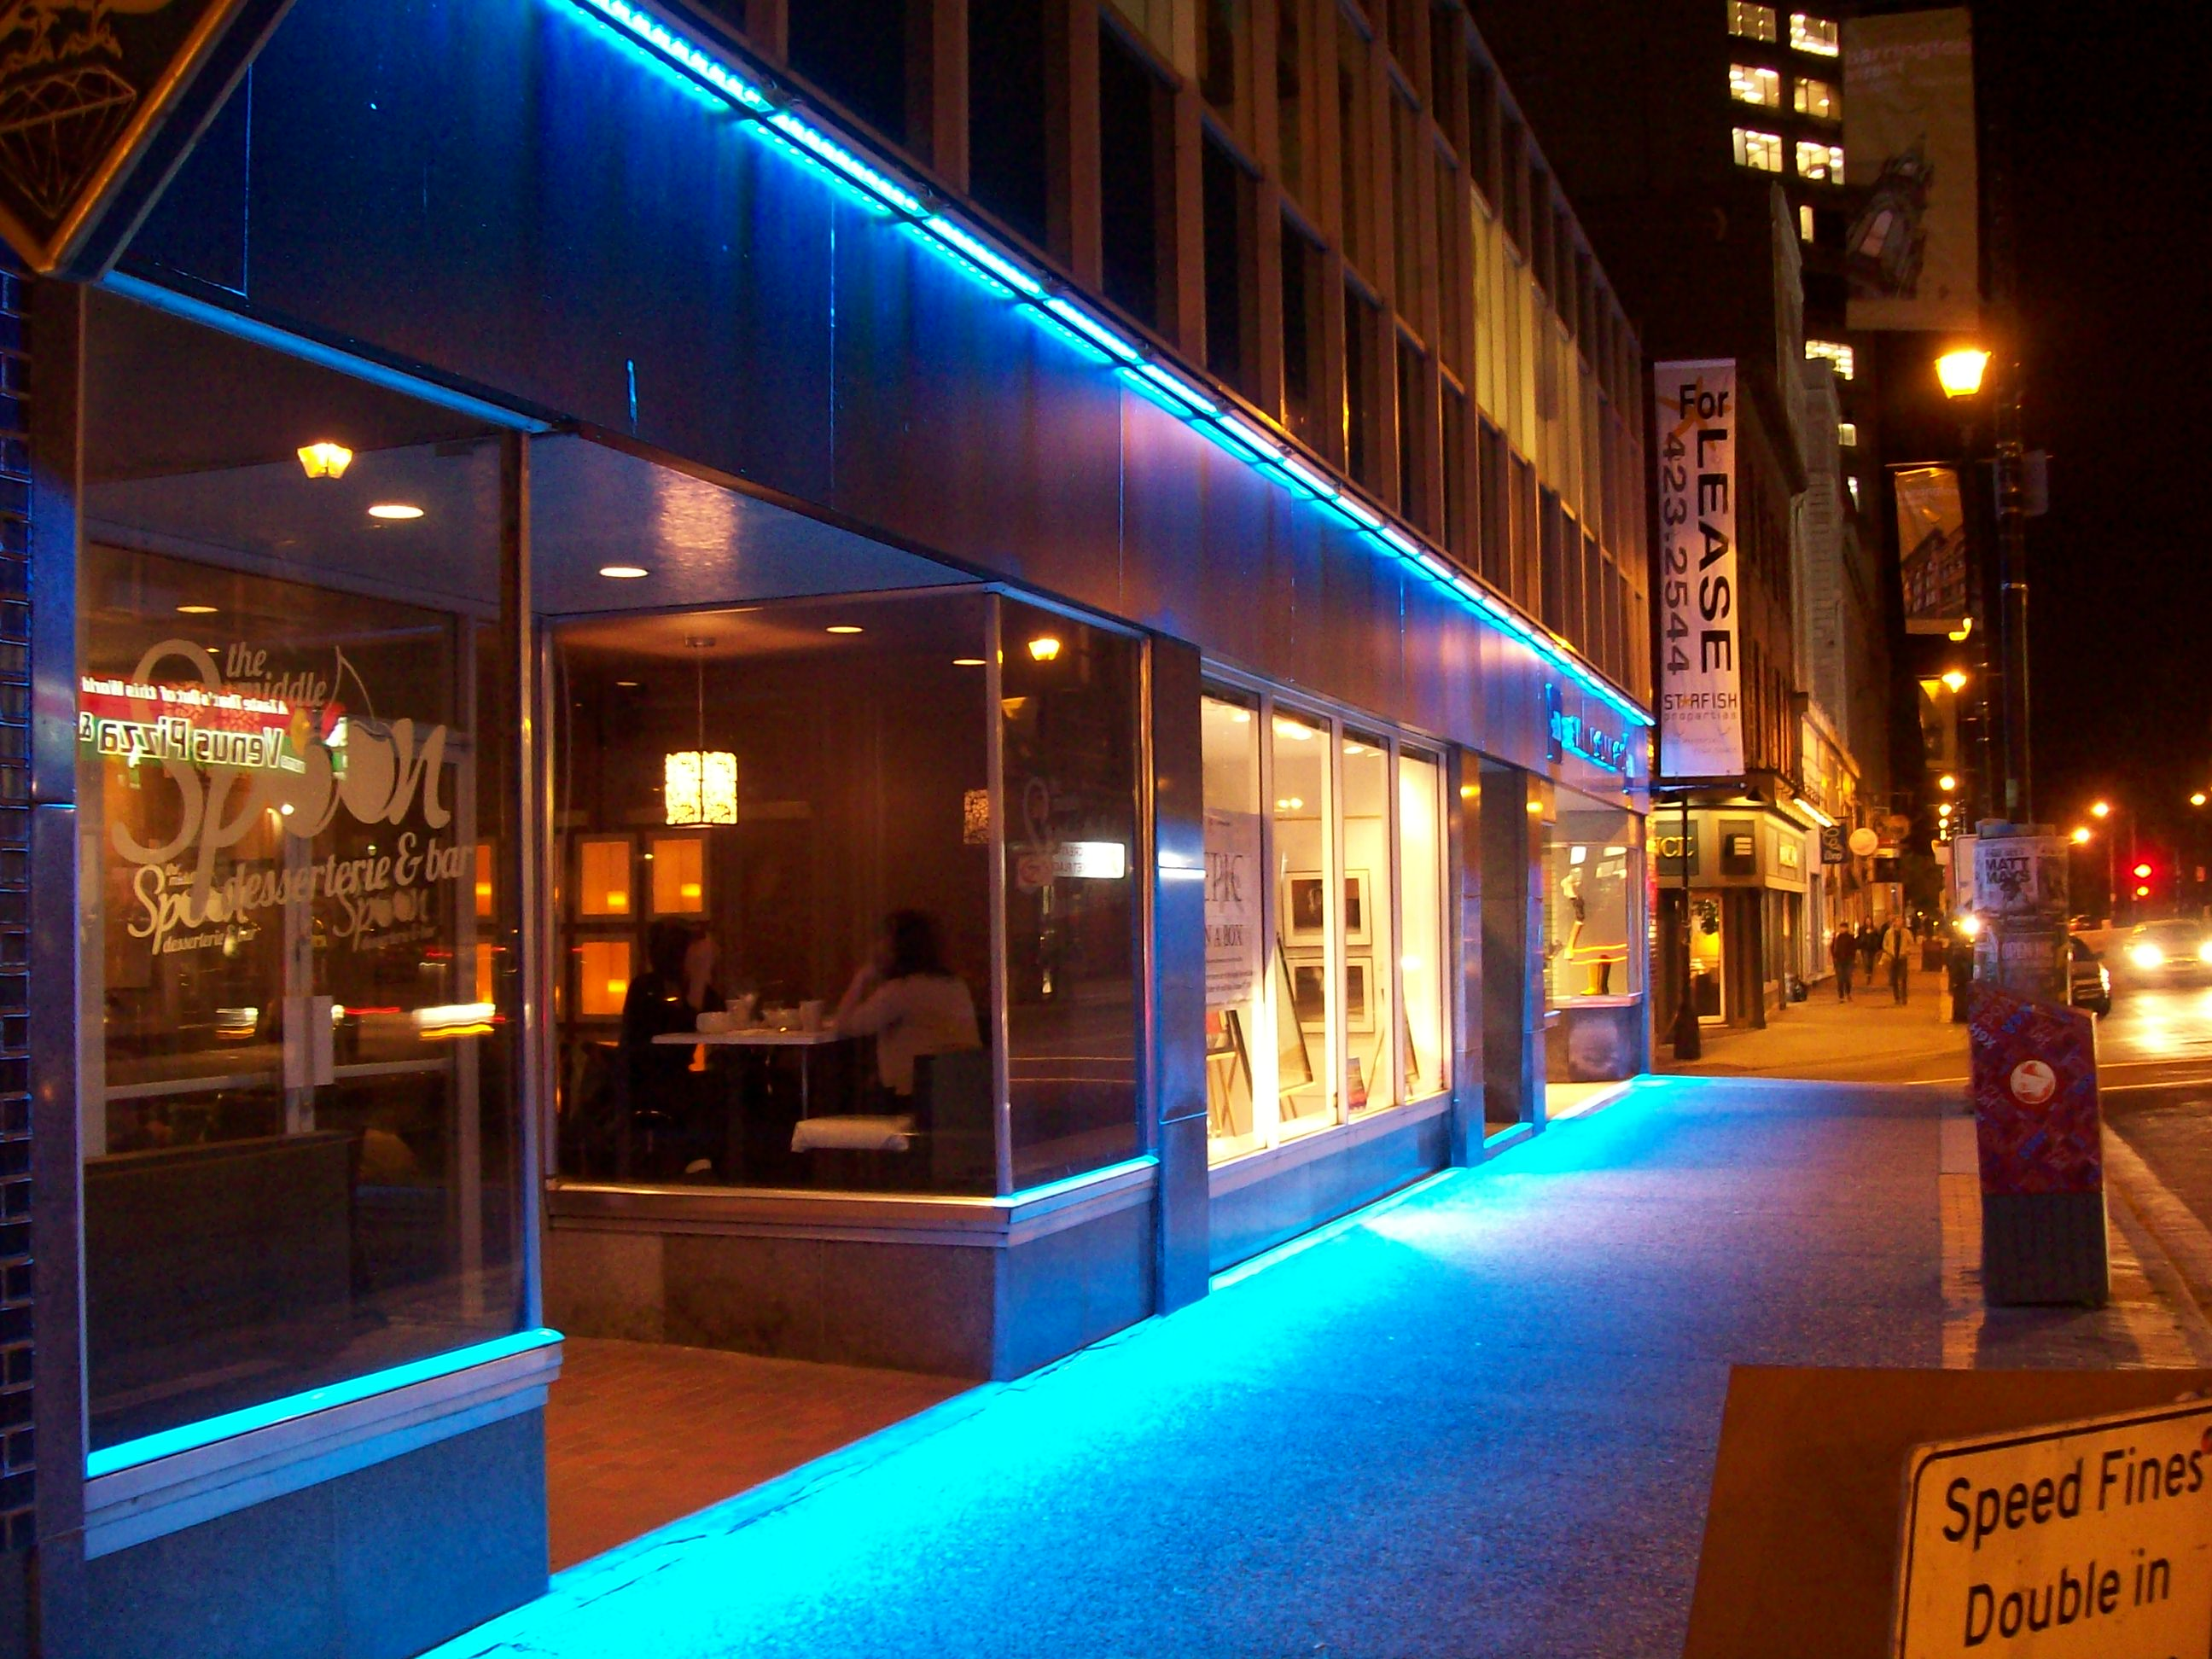 Ledelco custom led lights and lighting in halifax nova scotia led lighting is a cost effective energy efficient way to illuminate and attract attention to any area or structure many led products have the ability to aloadofball Choice Image